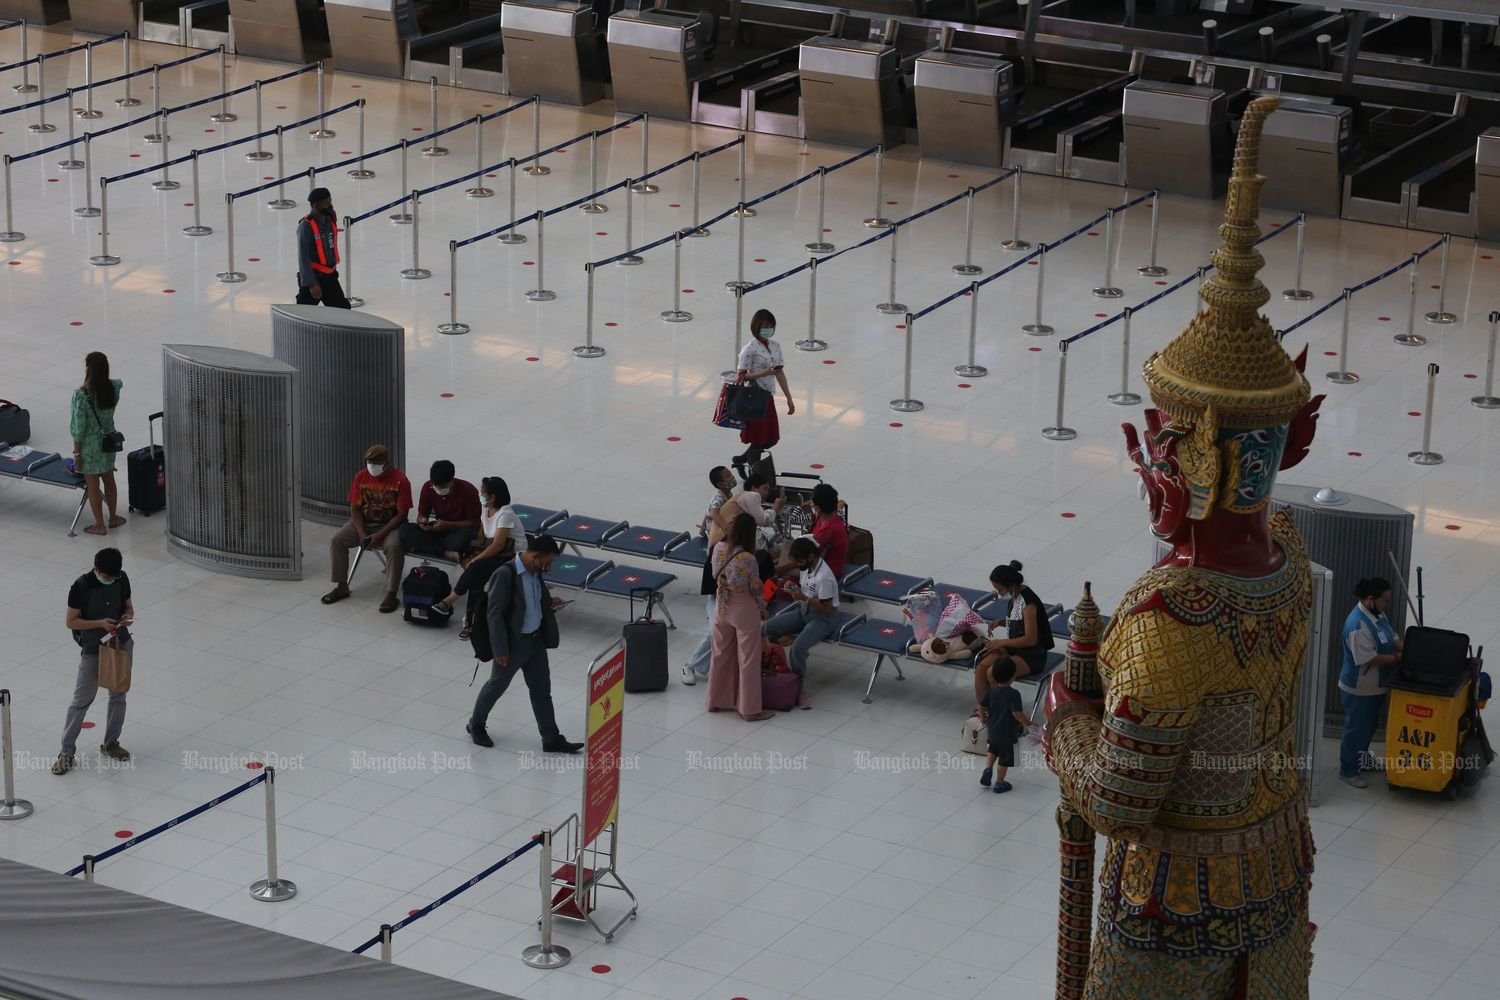 Suvarnabhumi airport on June 15 after the fourth stage of lockdown relaxation. (Photo by Varuth Hirunyatheb)